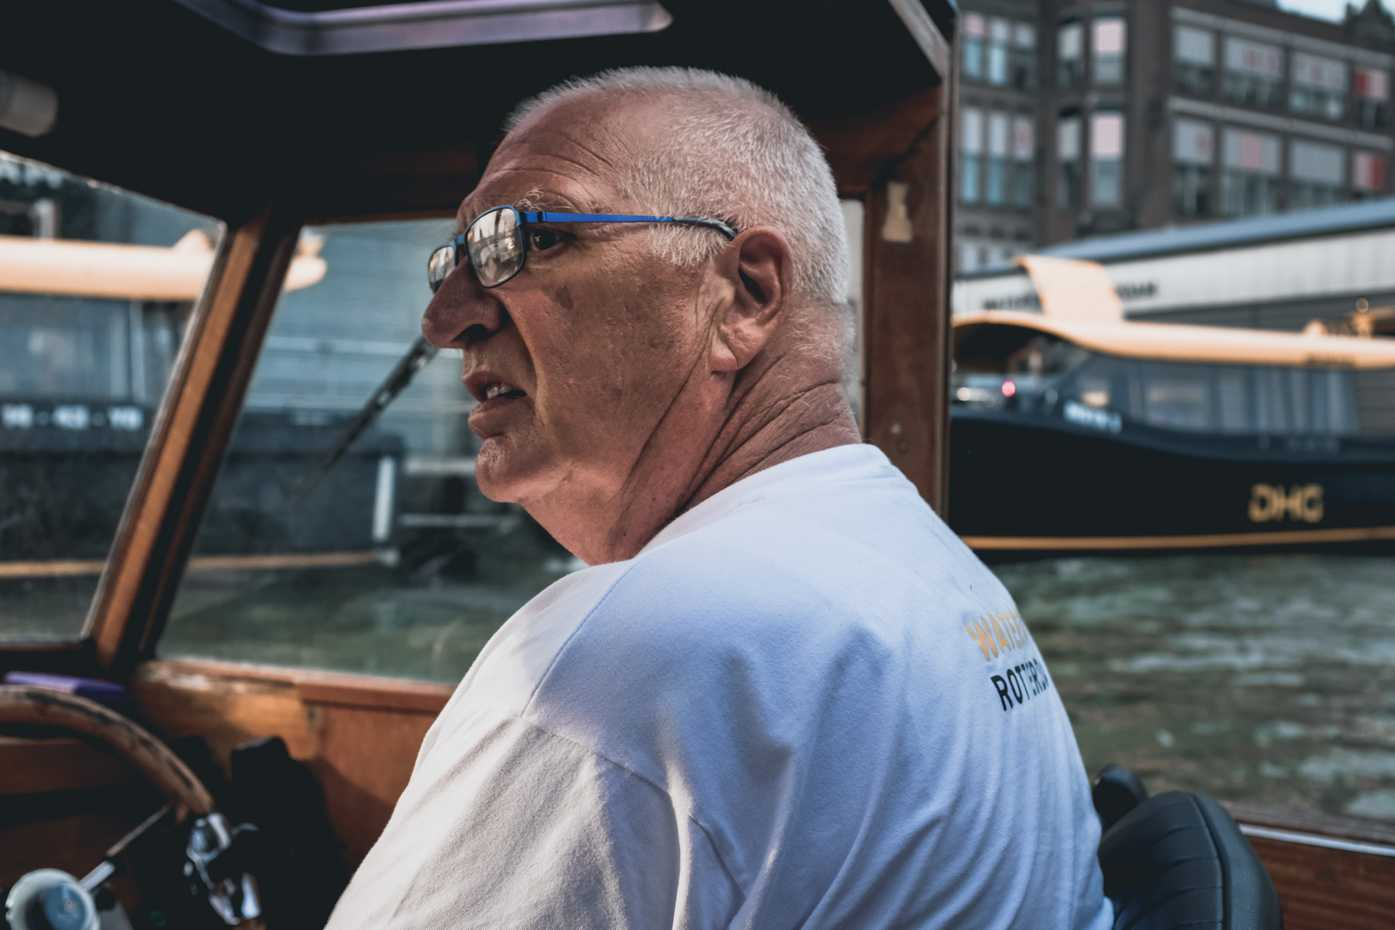 Rotterdam water taxi driver